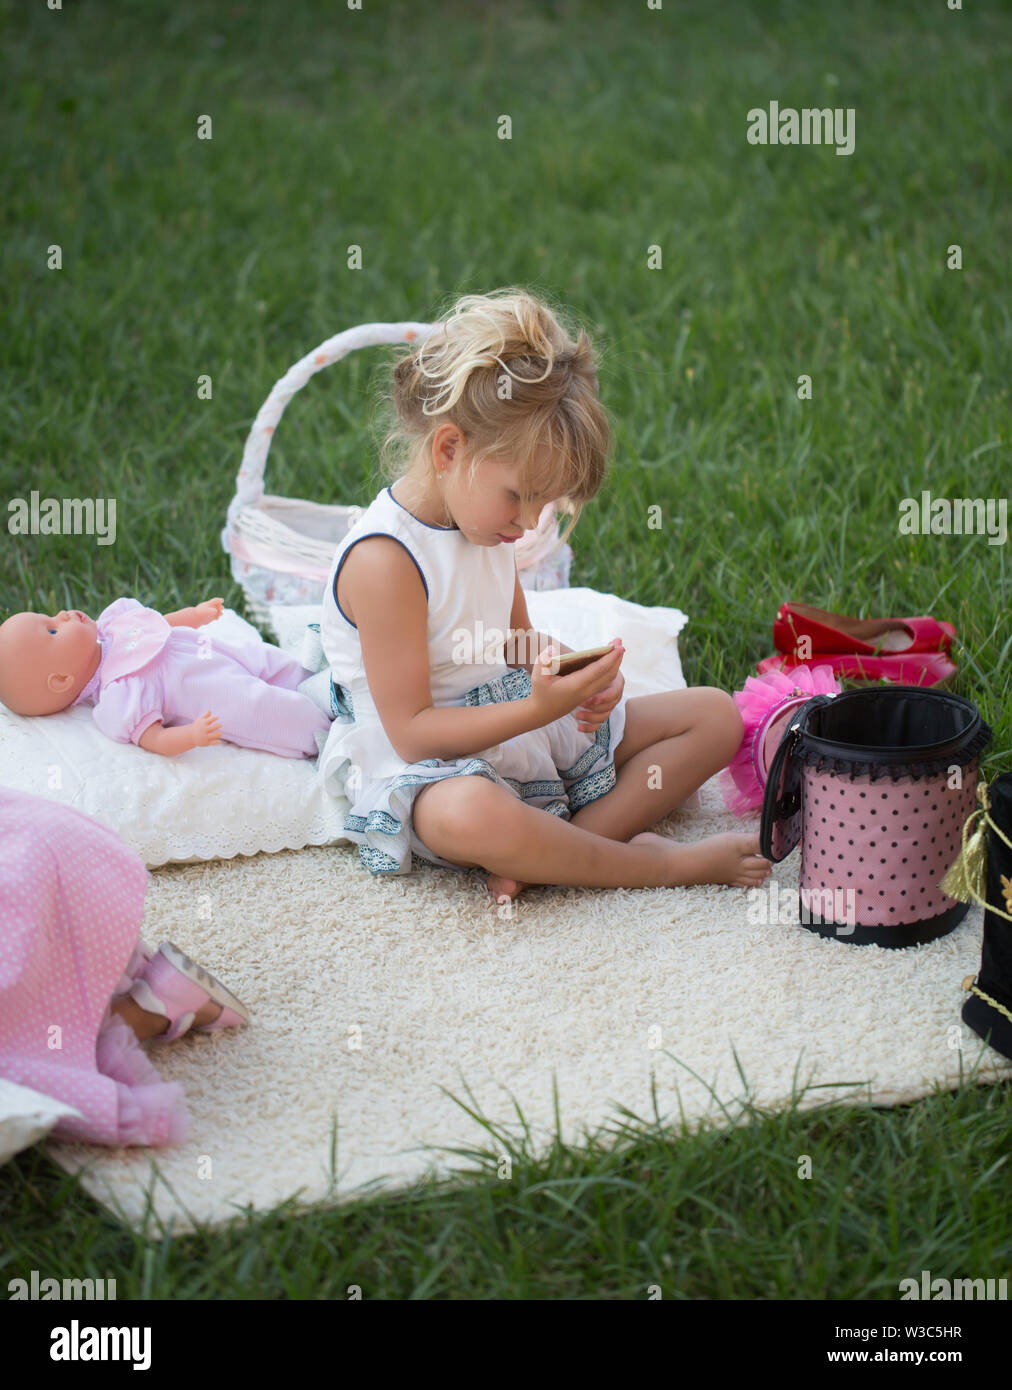 Girl with smartphone sit on cover on green grass. Child with mobile phone and doll on summer day. New technology, sms, communication, modern life. Vac - Stock Image